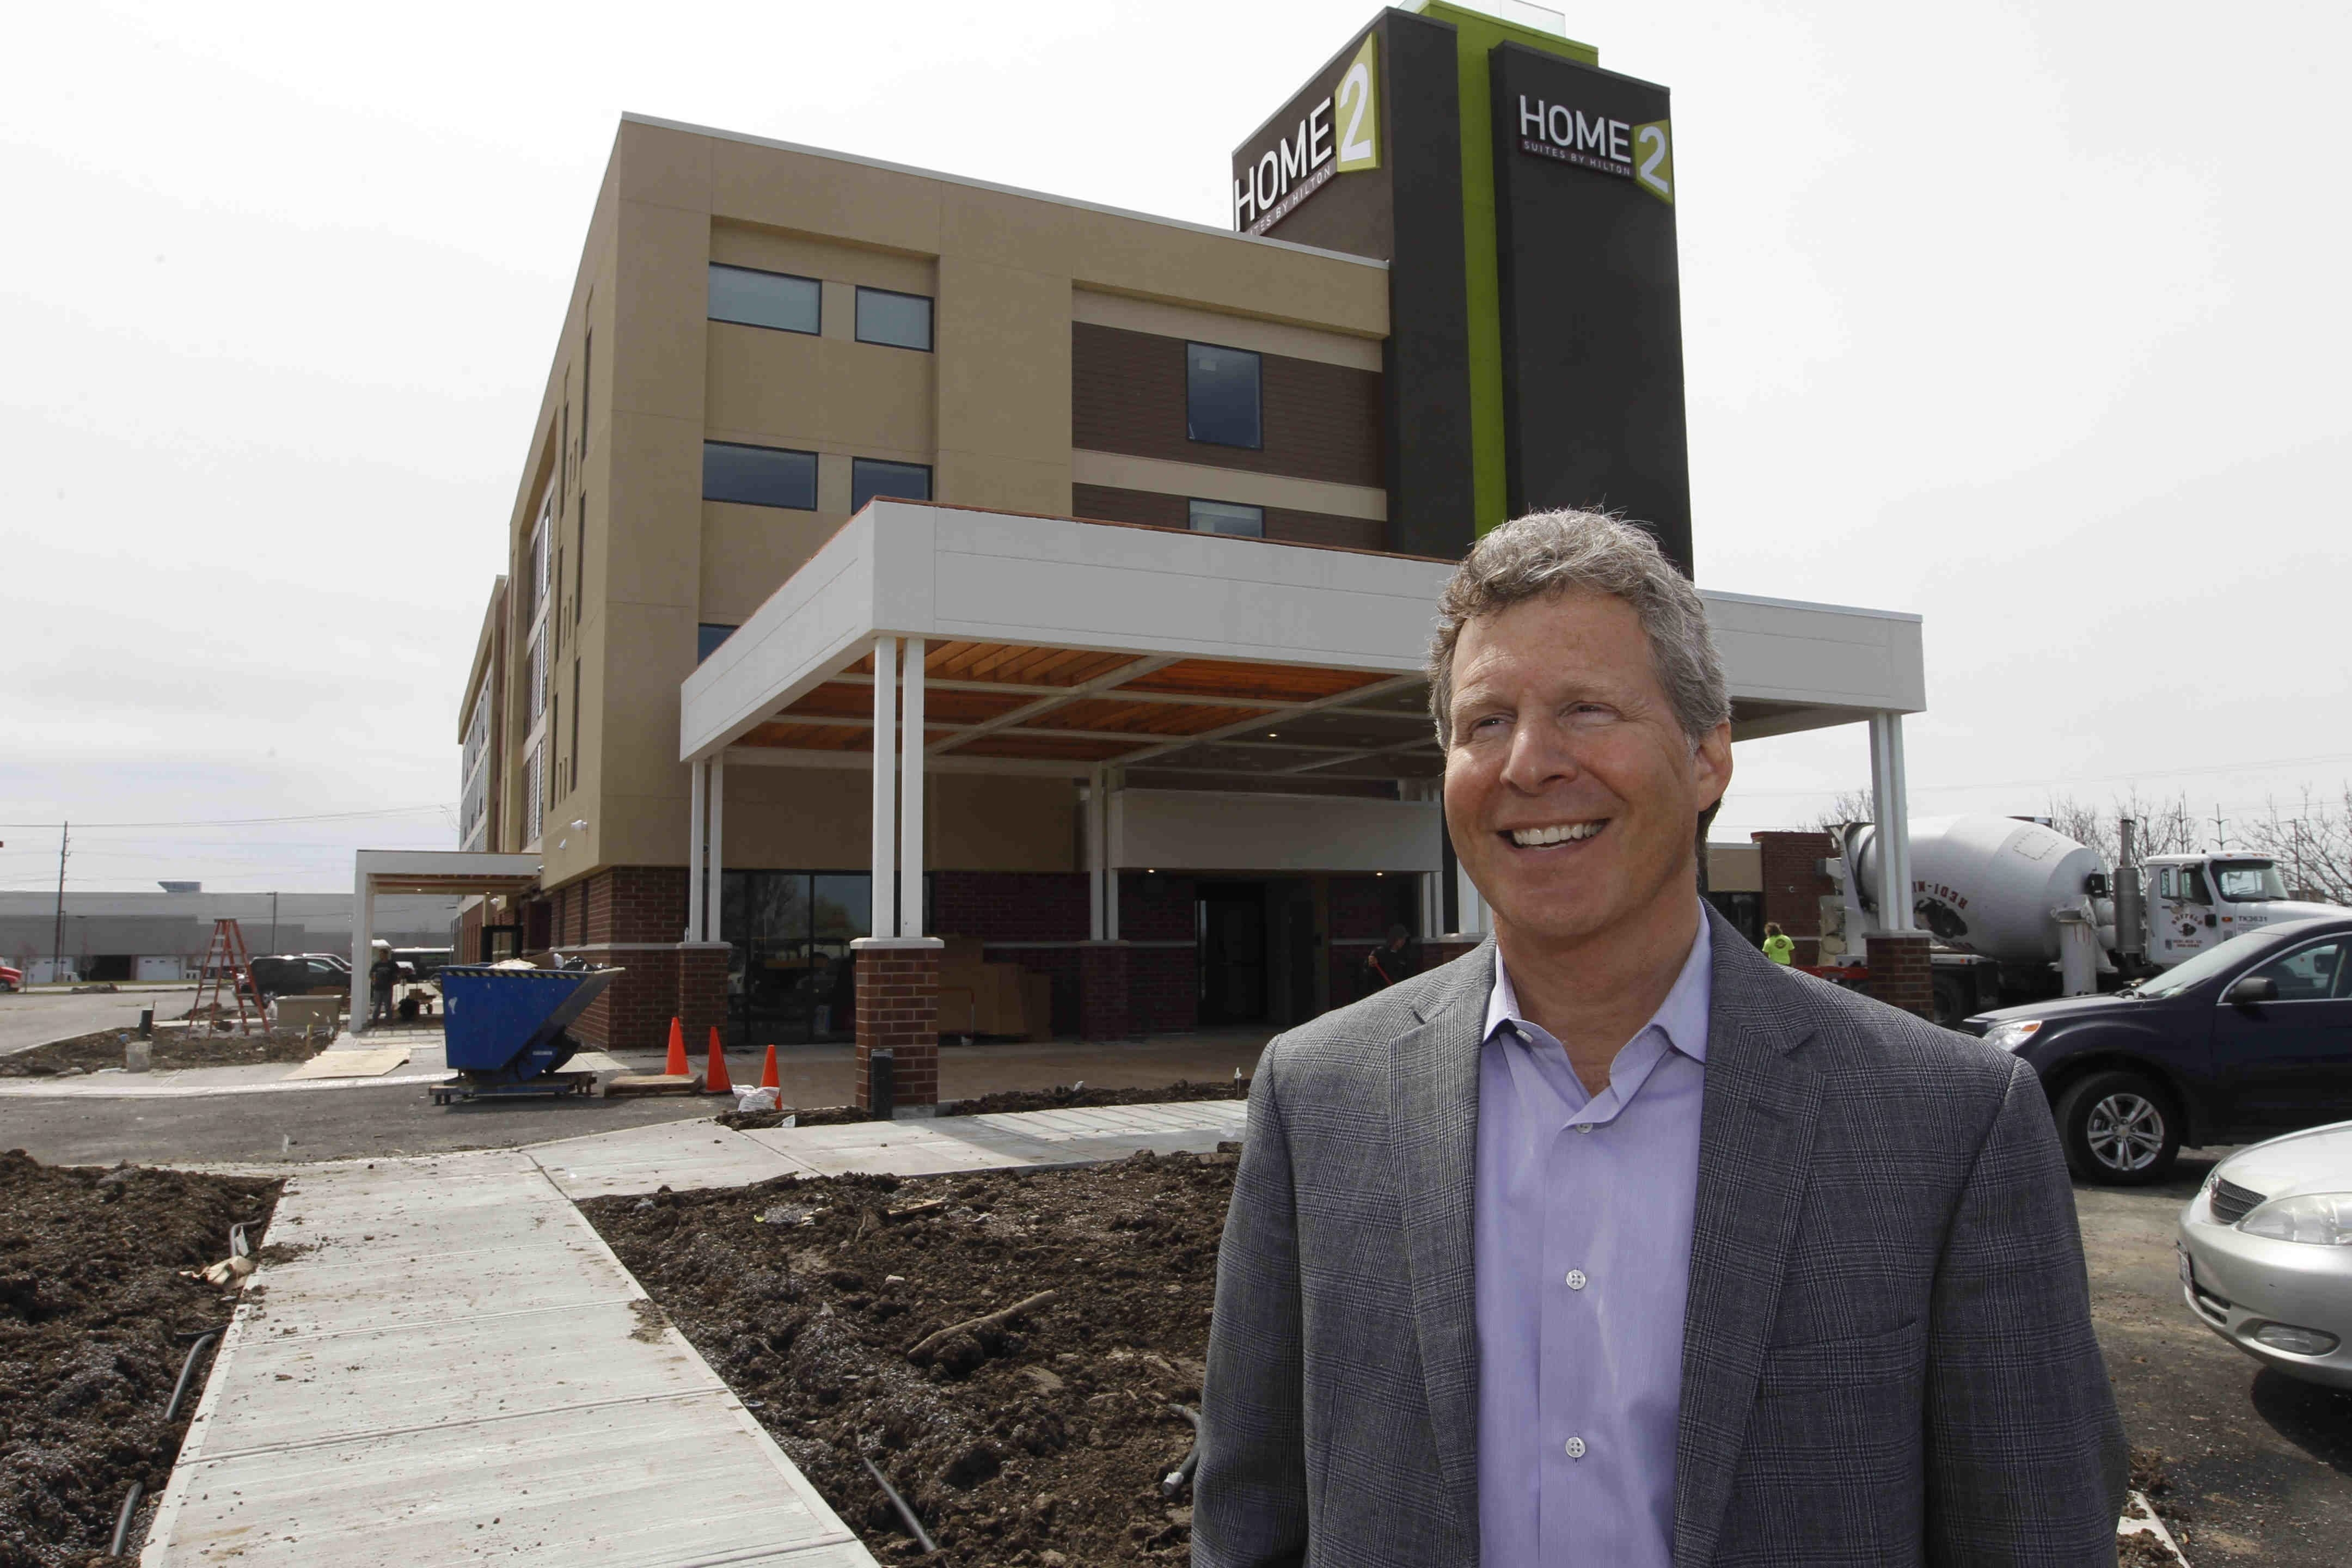 Eric Recoon of Benderson Development describes the new Home2 Suites as welcoming and inviting.